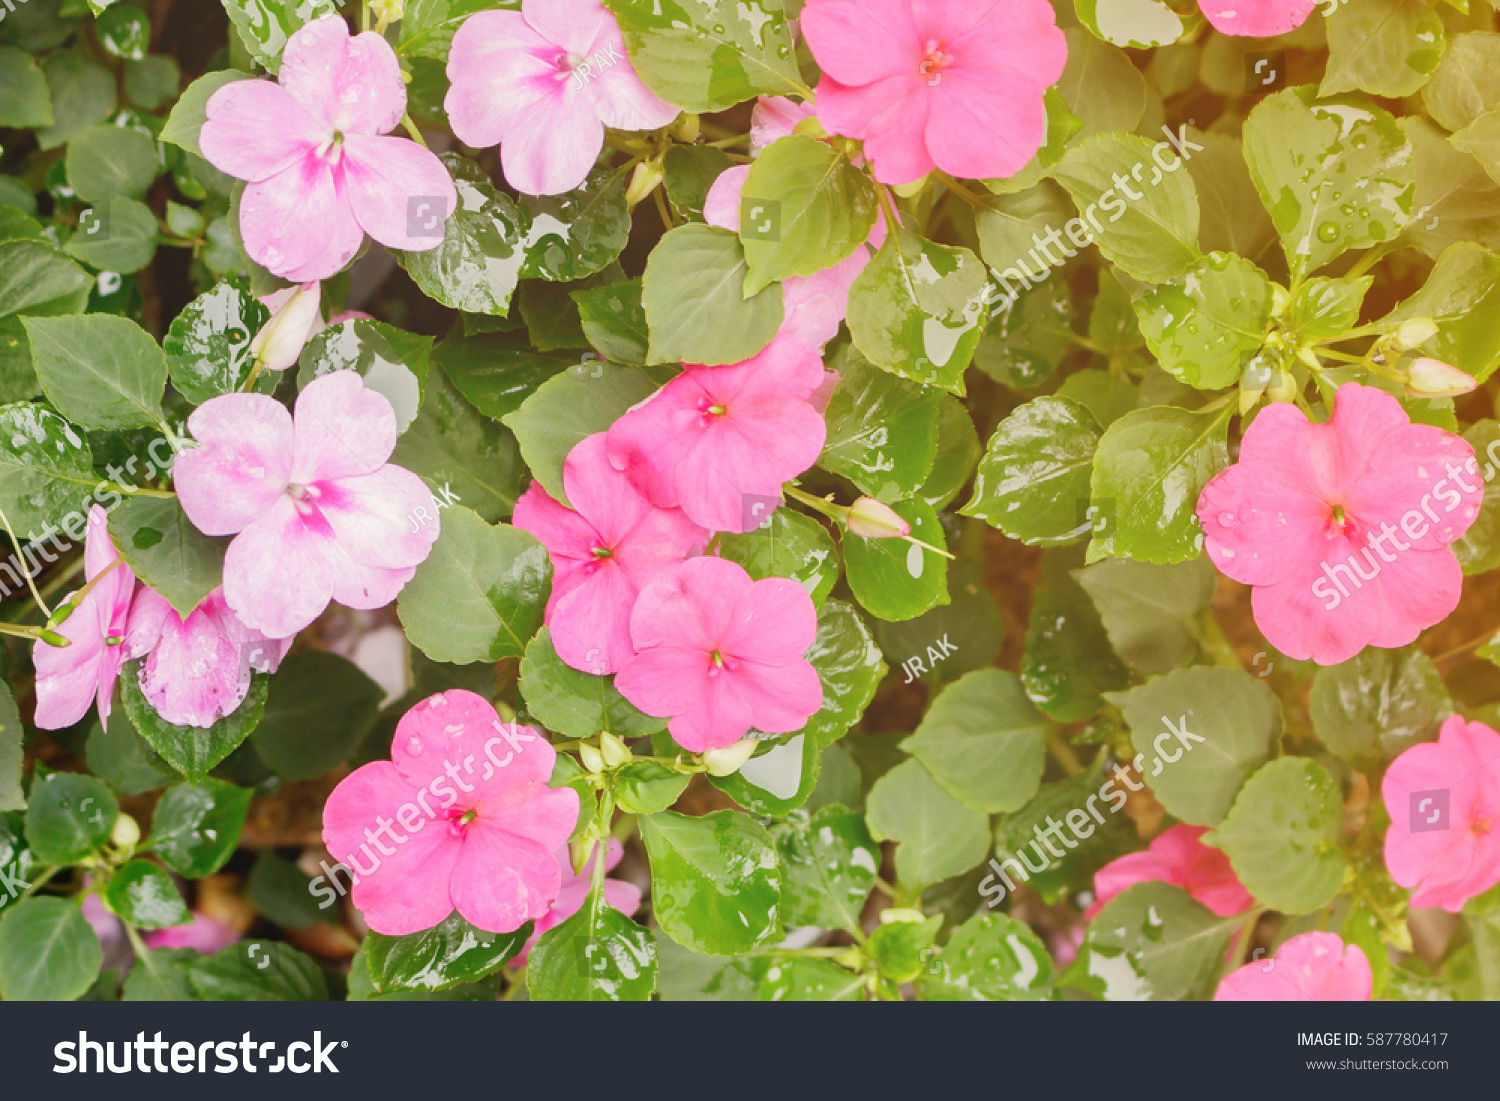 Pink flower name impatiens popularity gardening stock photo pink flower name is impatiens popularity of gardening making light soft and blur mightylinksfo